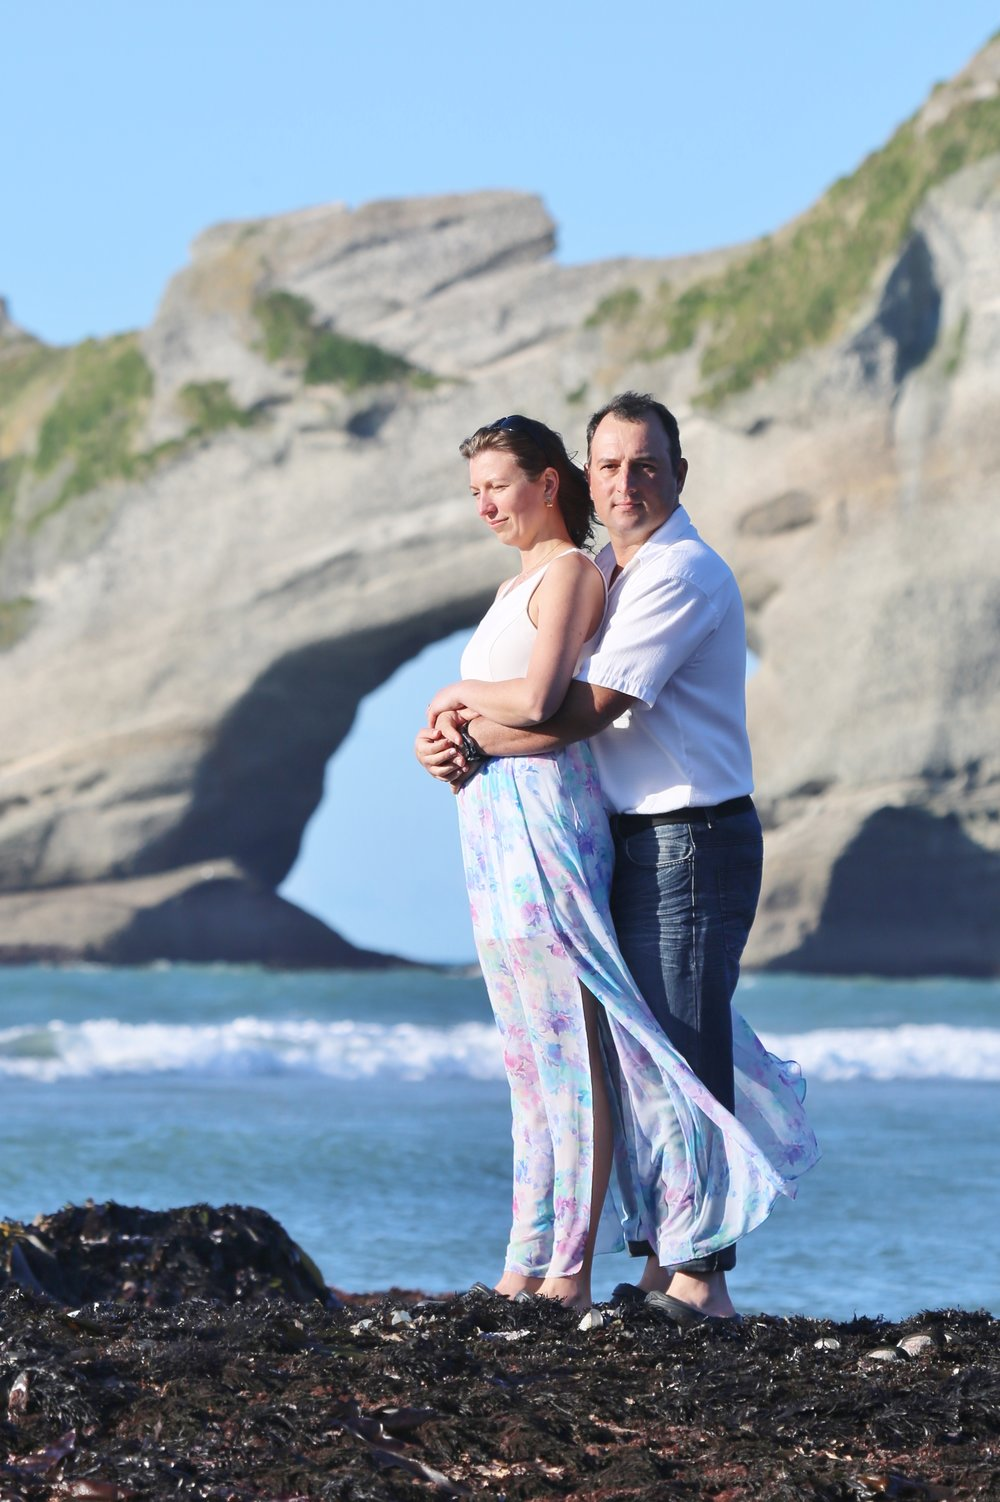 Beach Destination - Engagement or Wedding